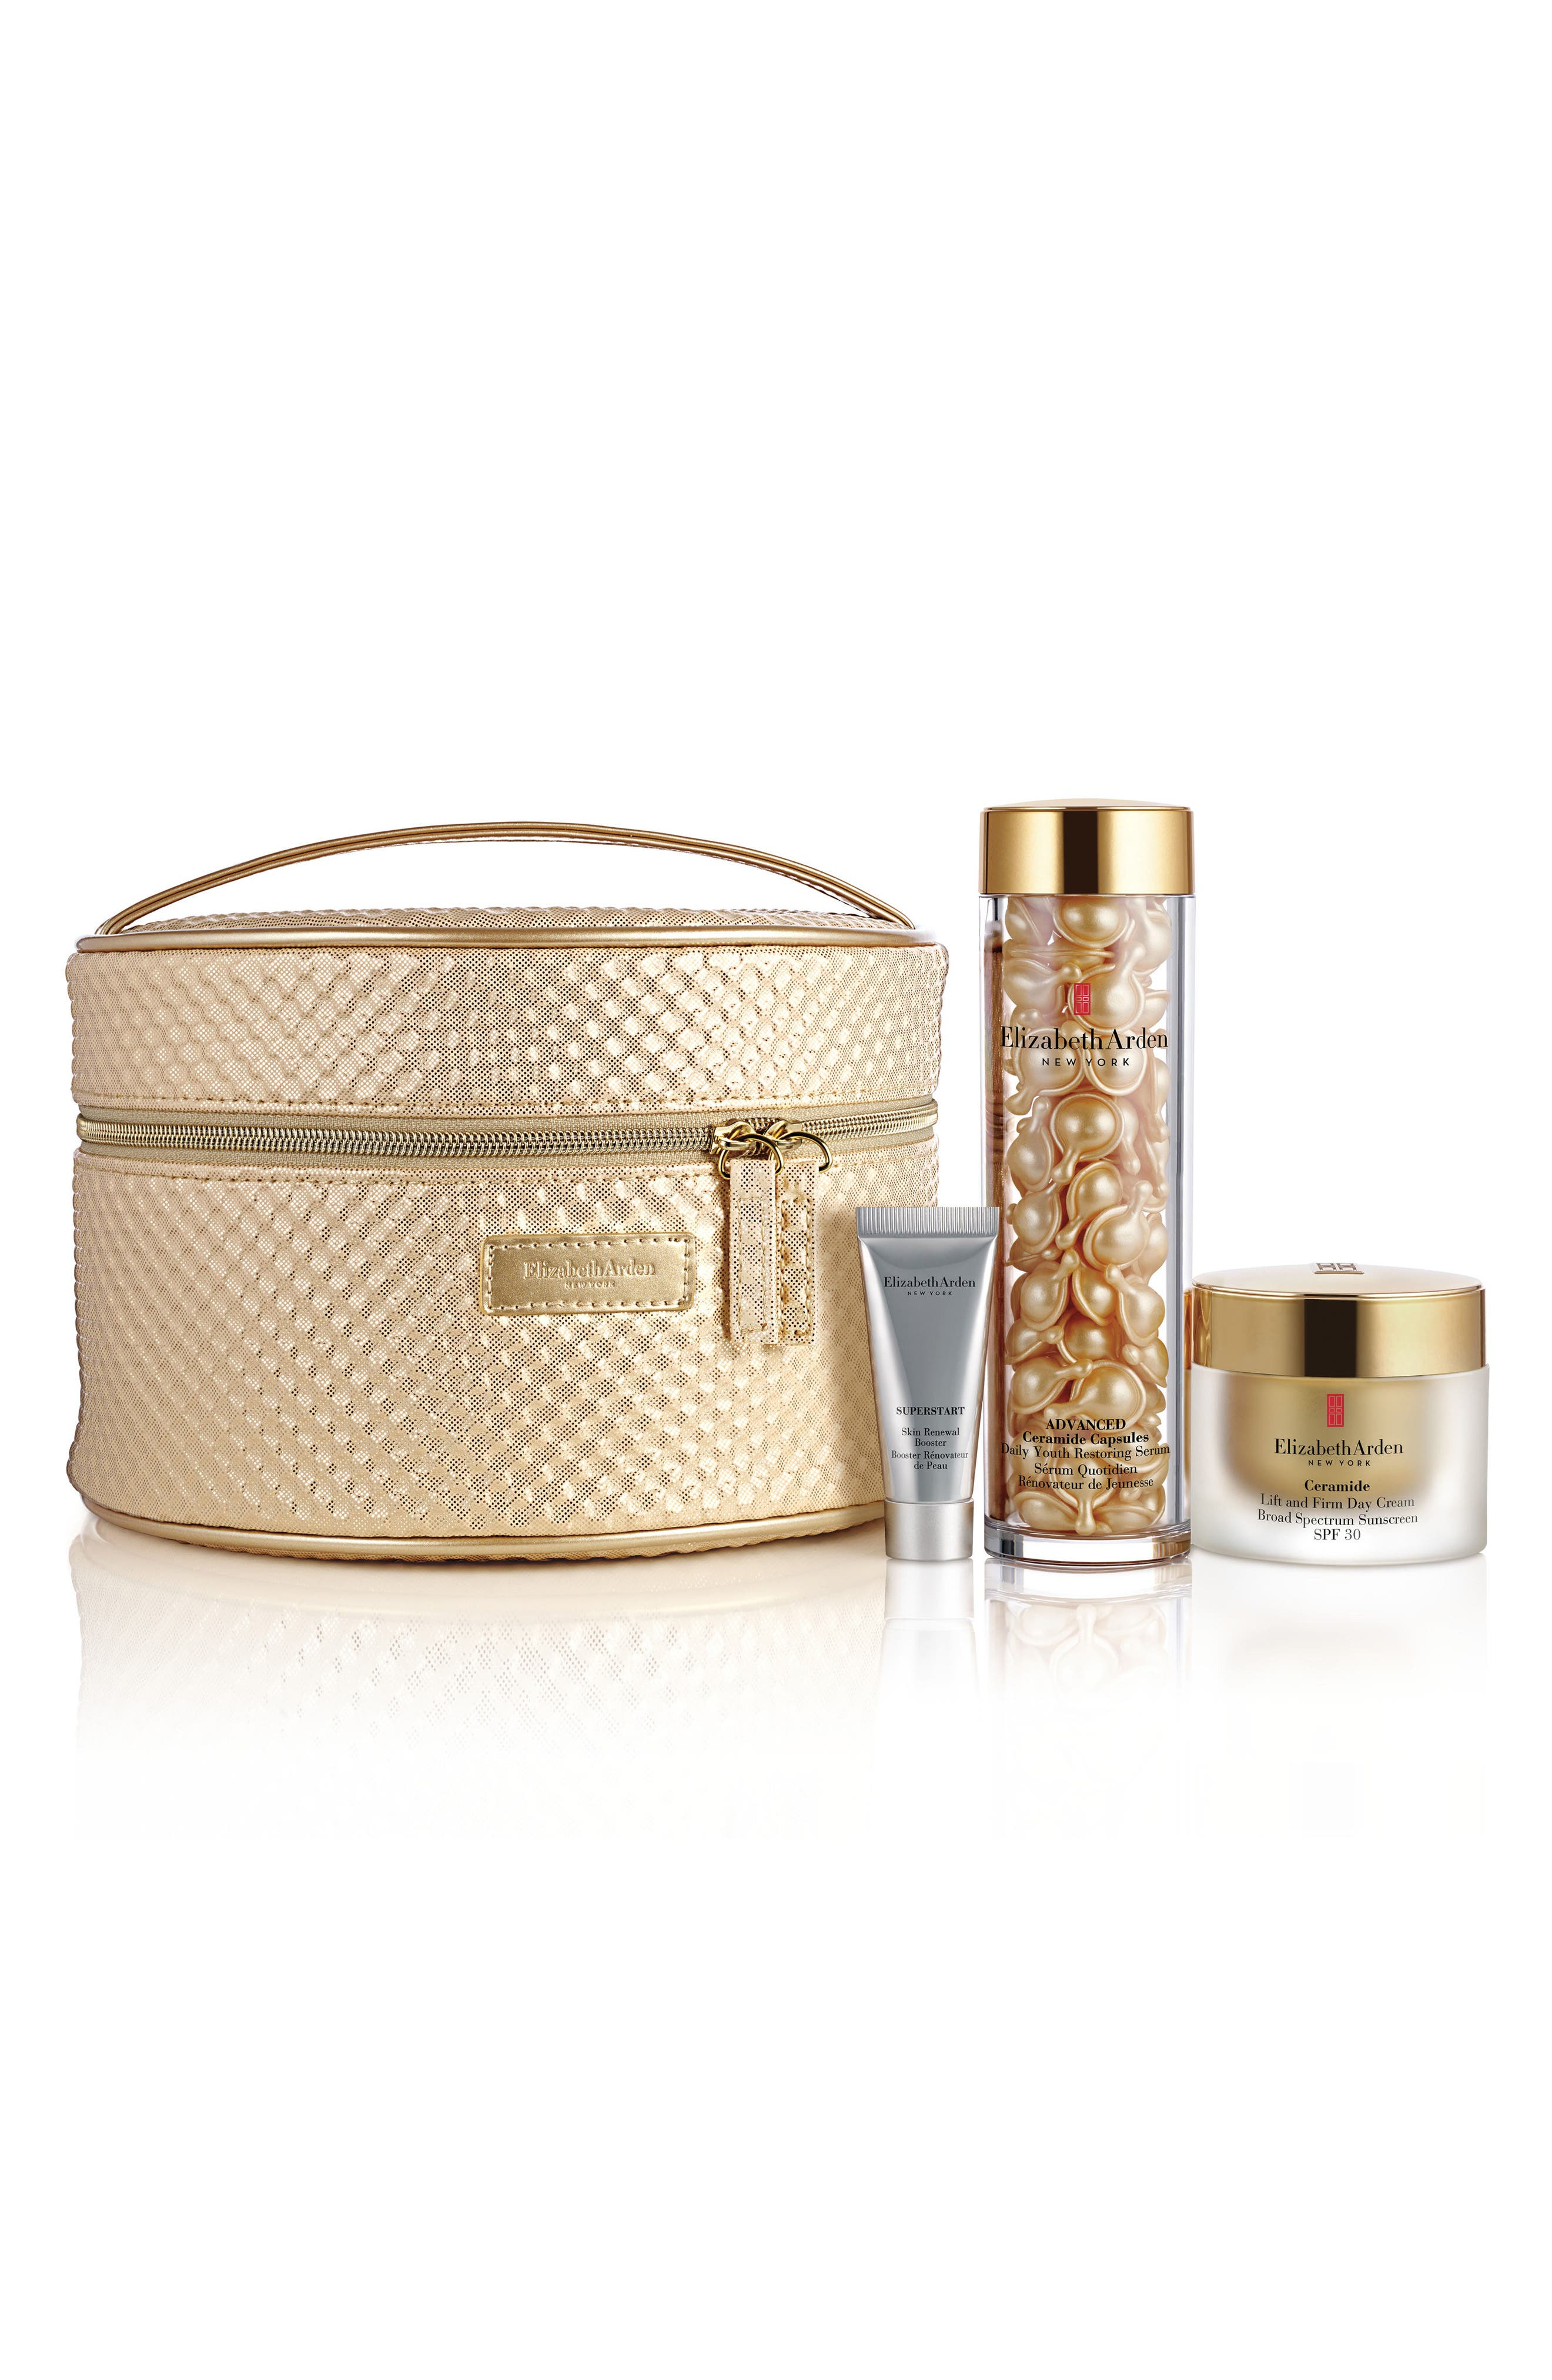 Elizabeth Arden Ceramide Set ($173 Value)